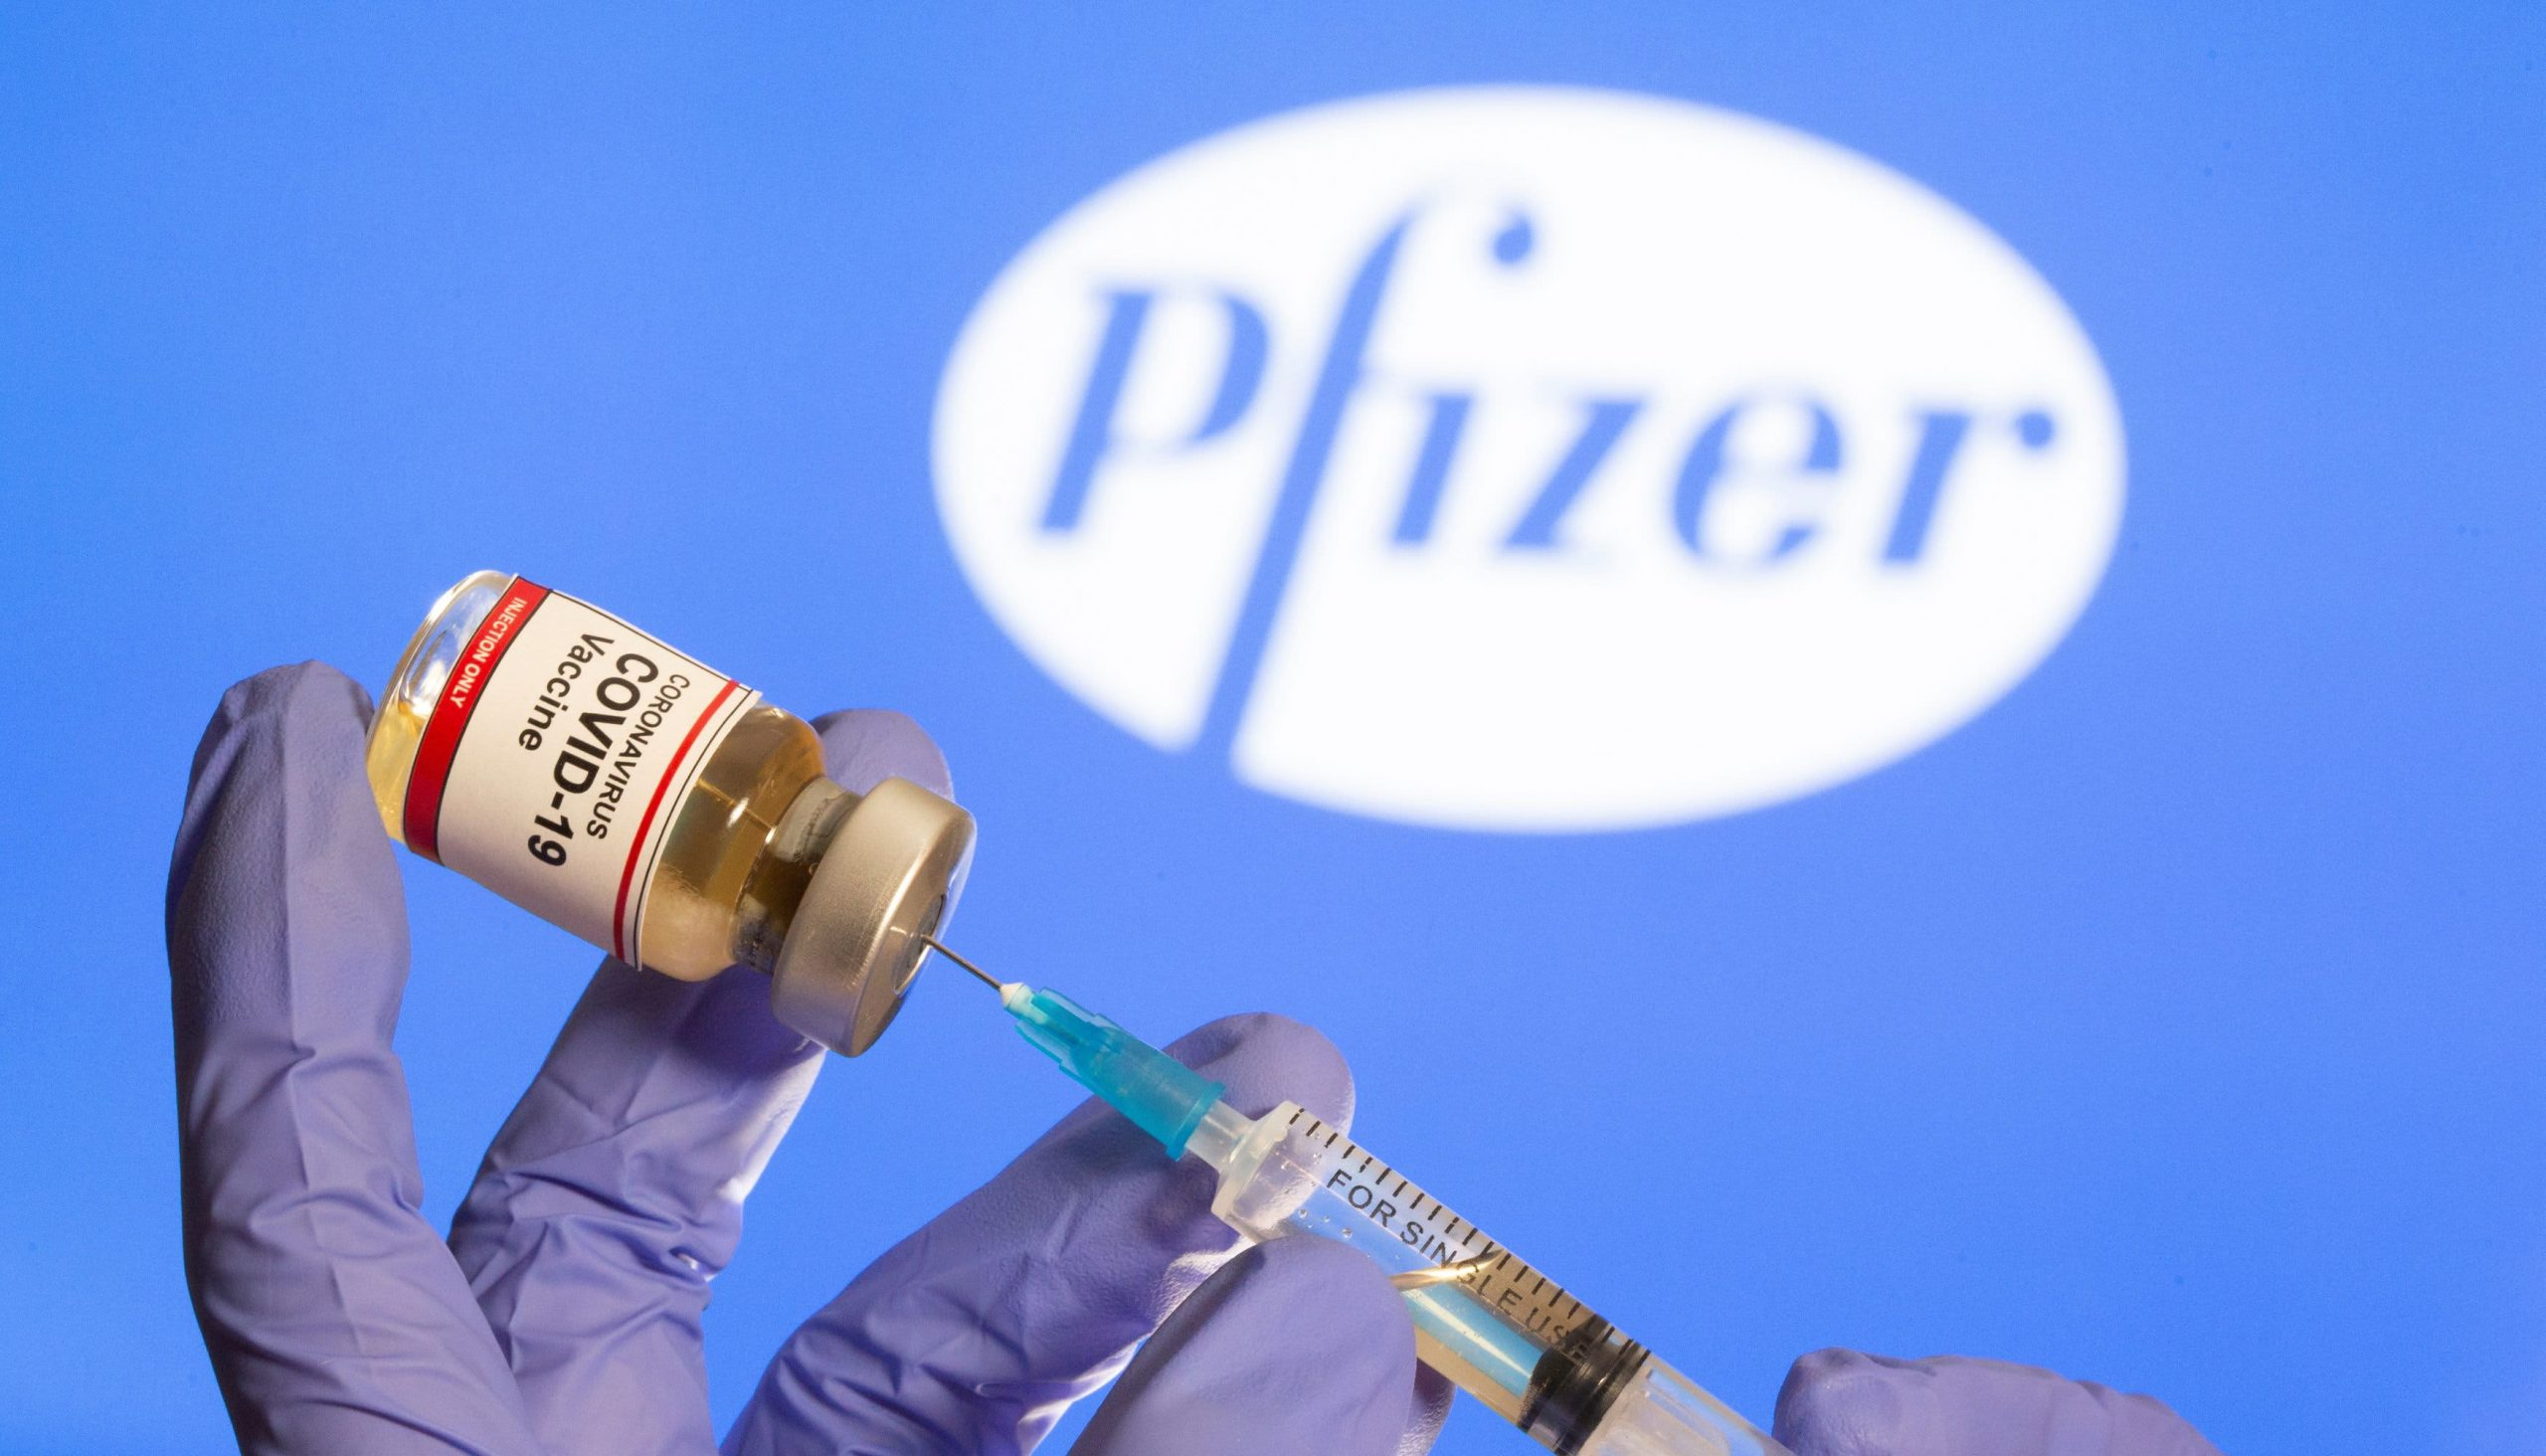 pfizers-covid-vaccine-authorised-by-fda-for-emergency-use